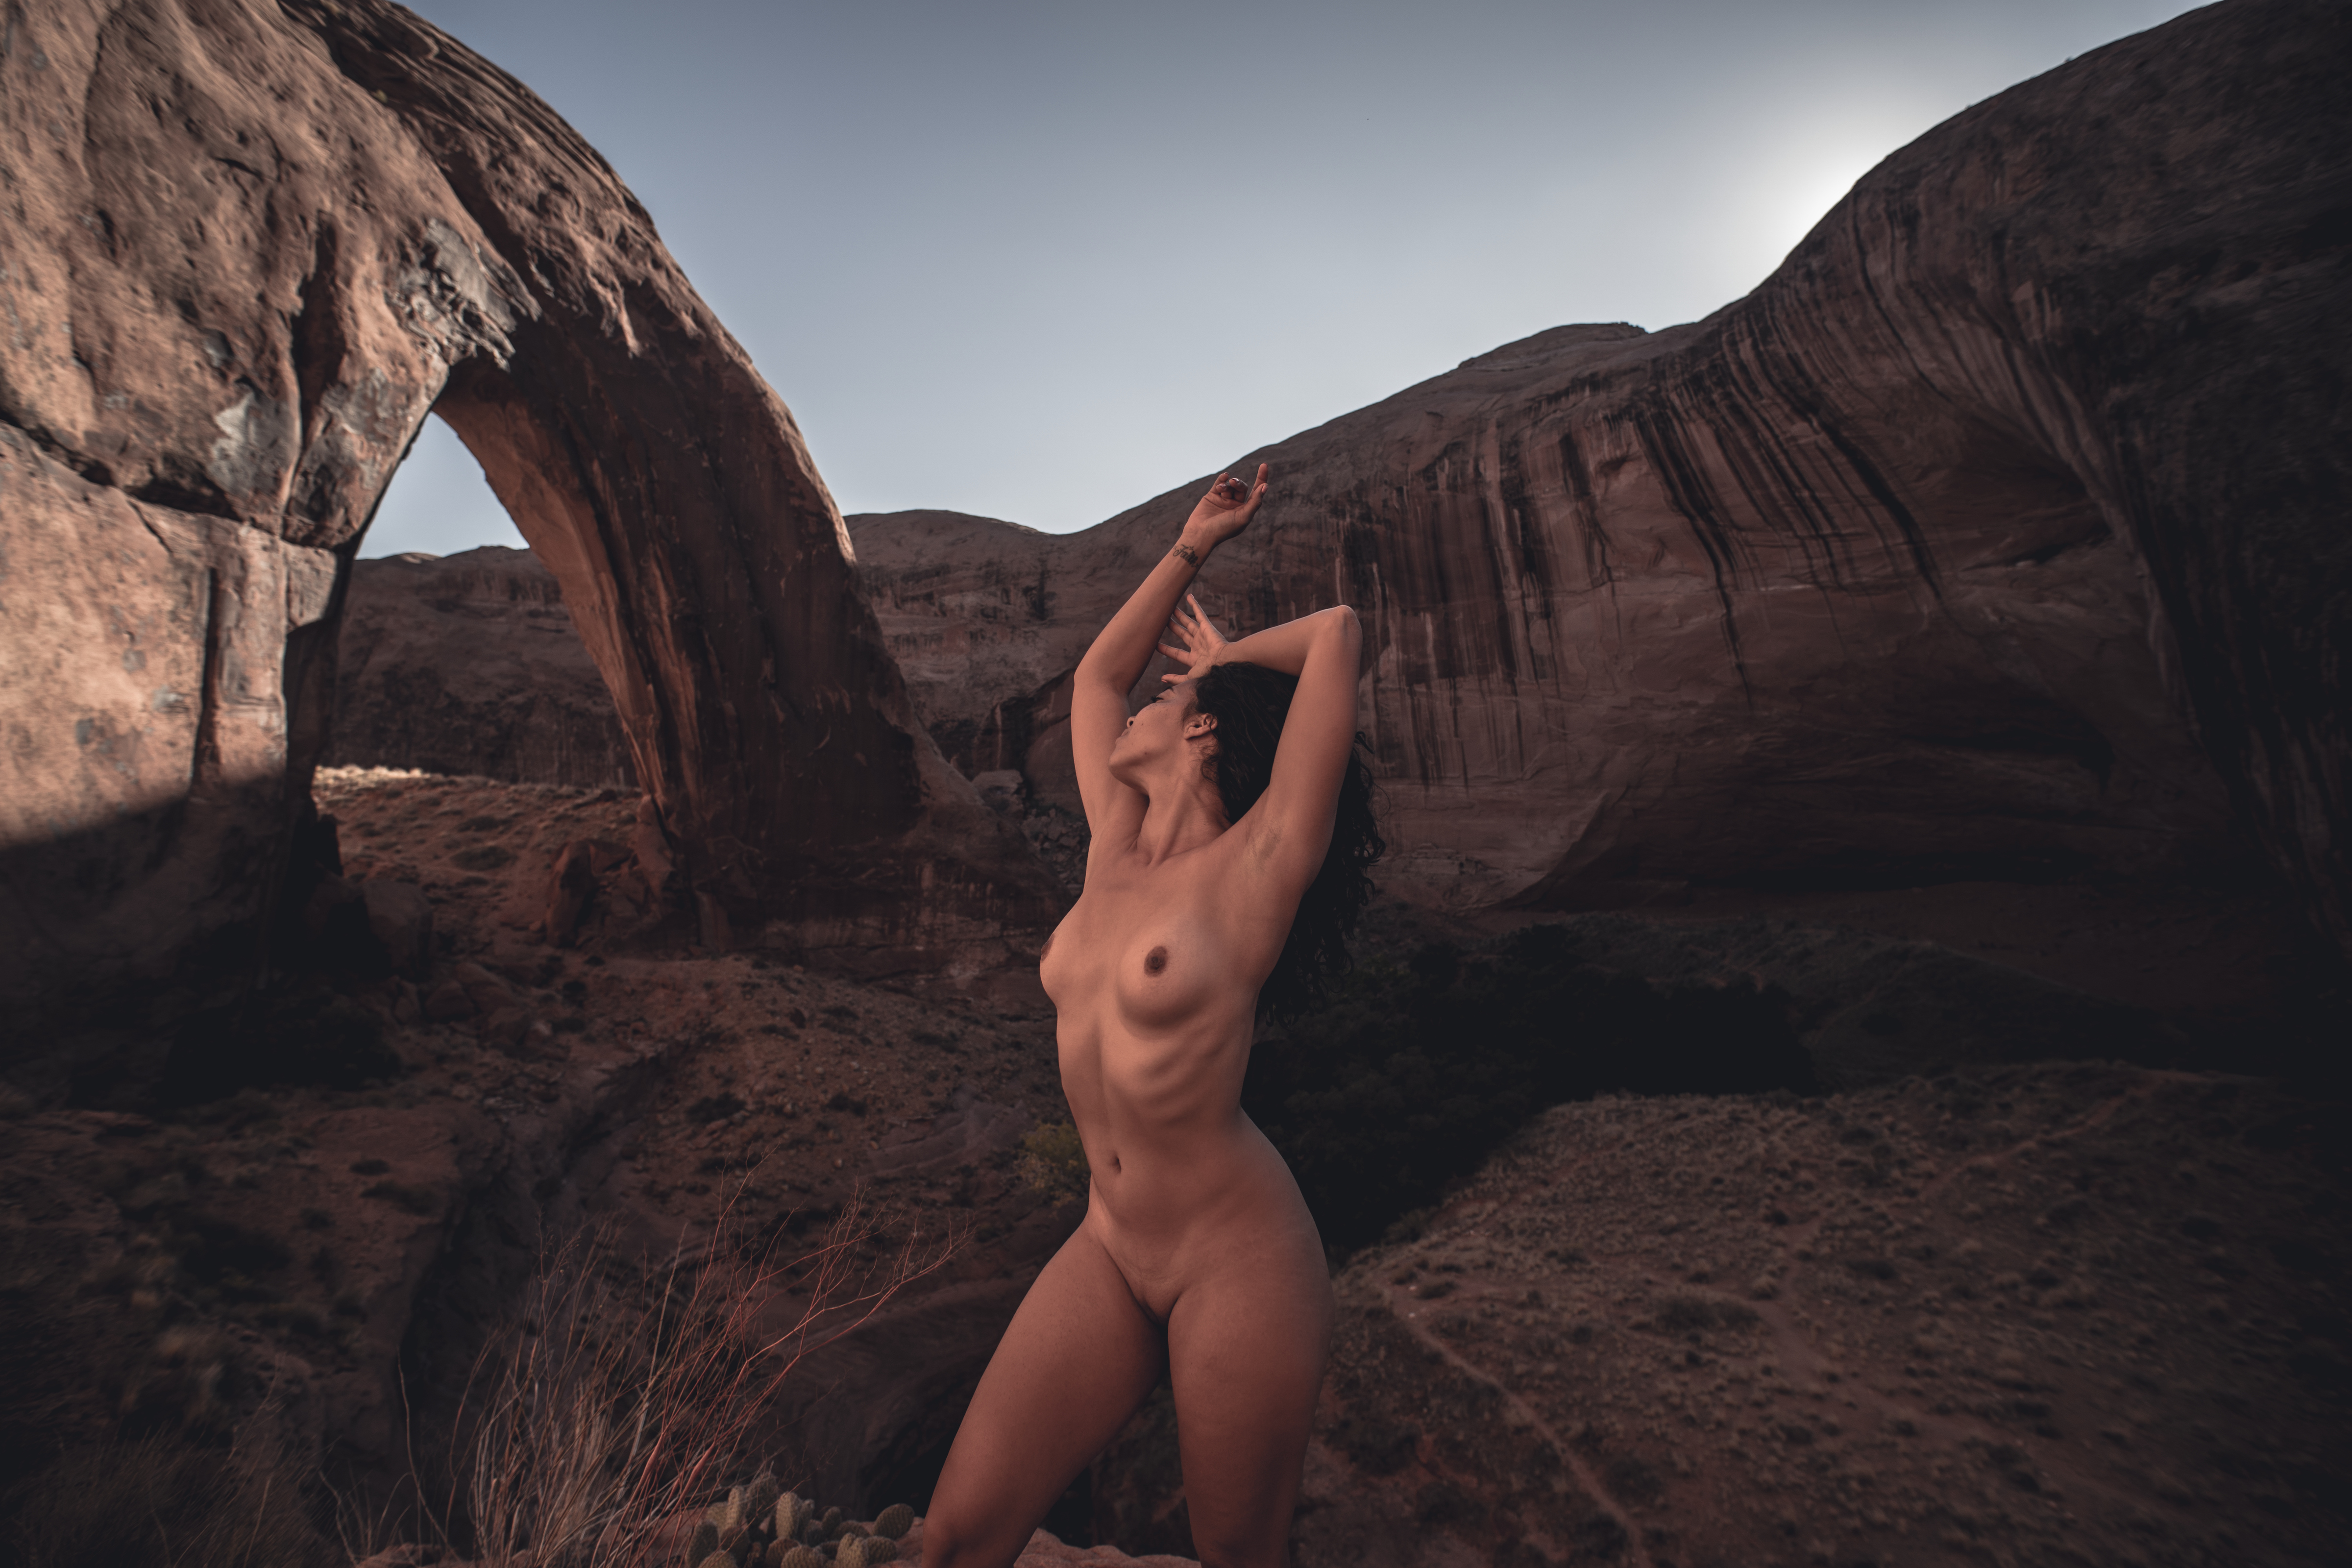 A nude black woman stretches tall with Broken Bow Arch in the background for fashion nude photographer Dylan H Brown's Impermanence series